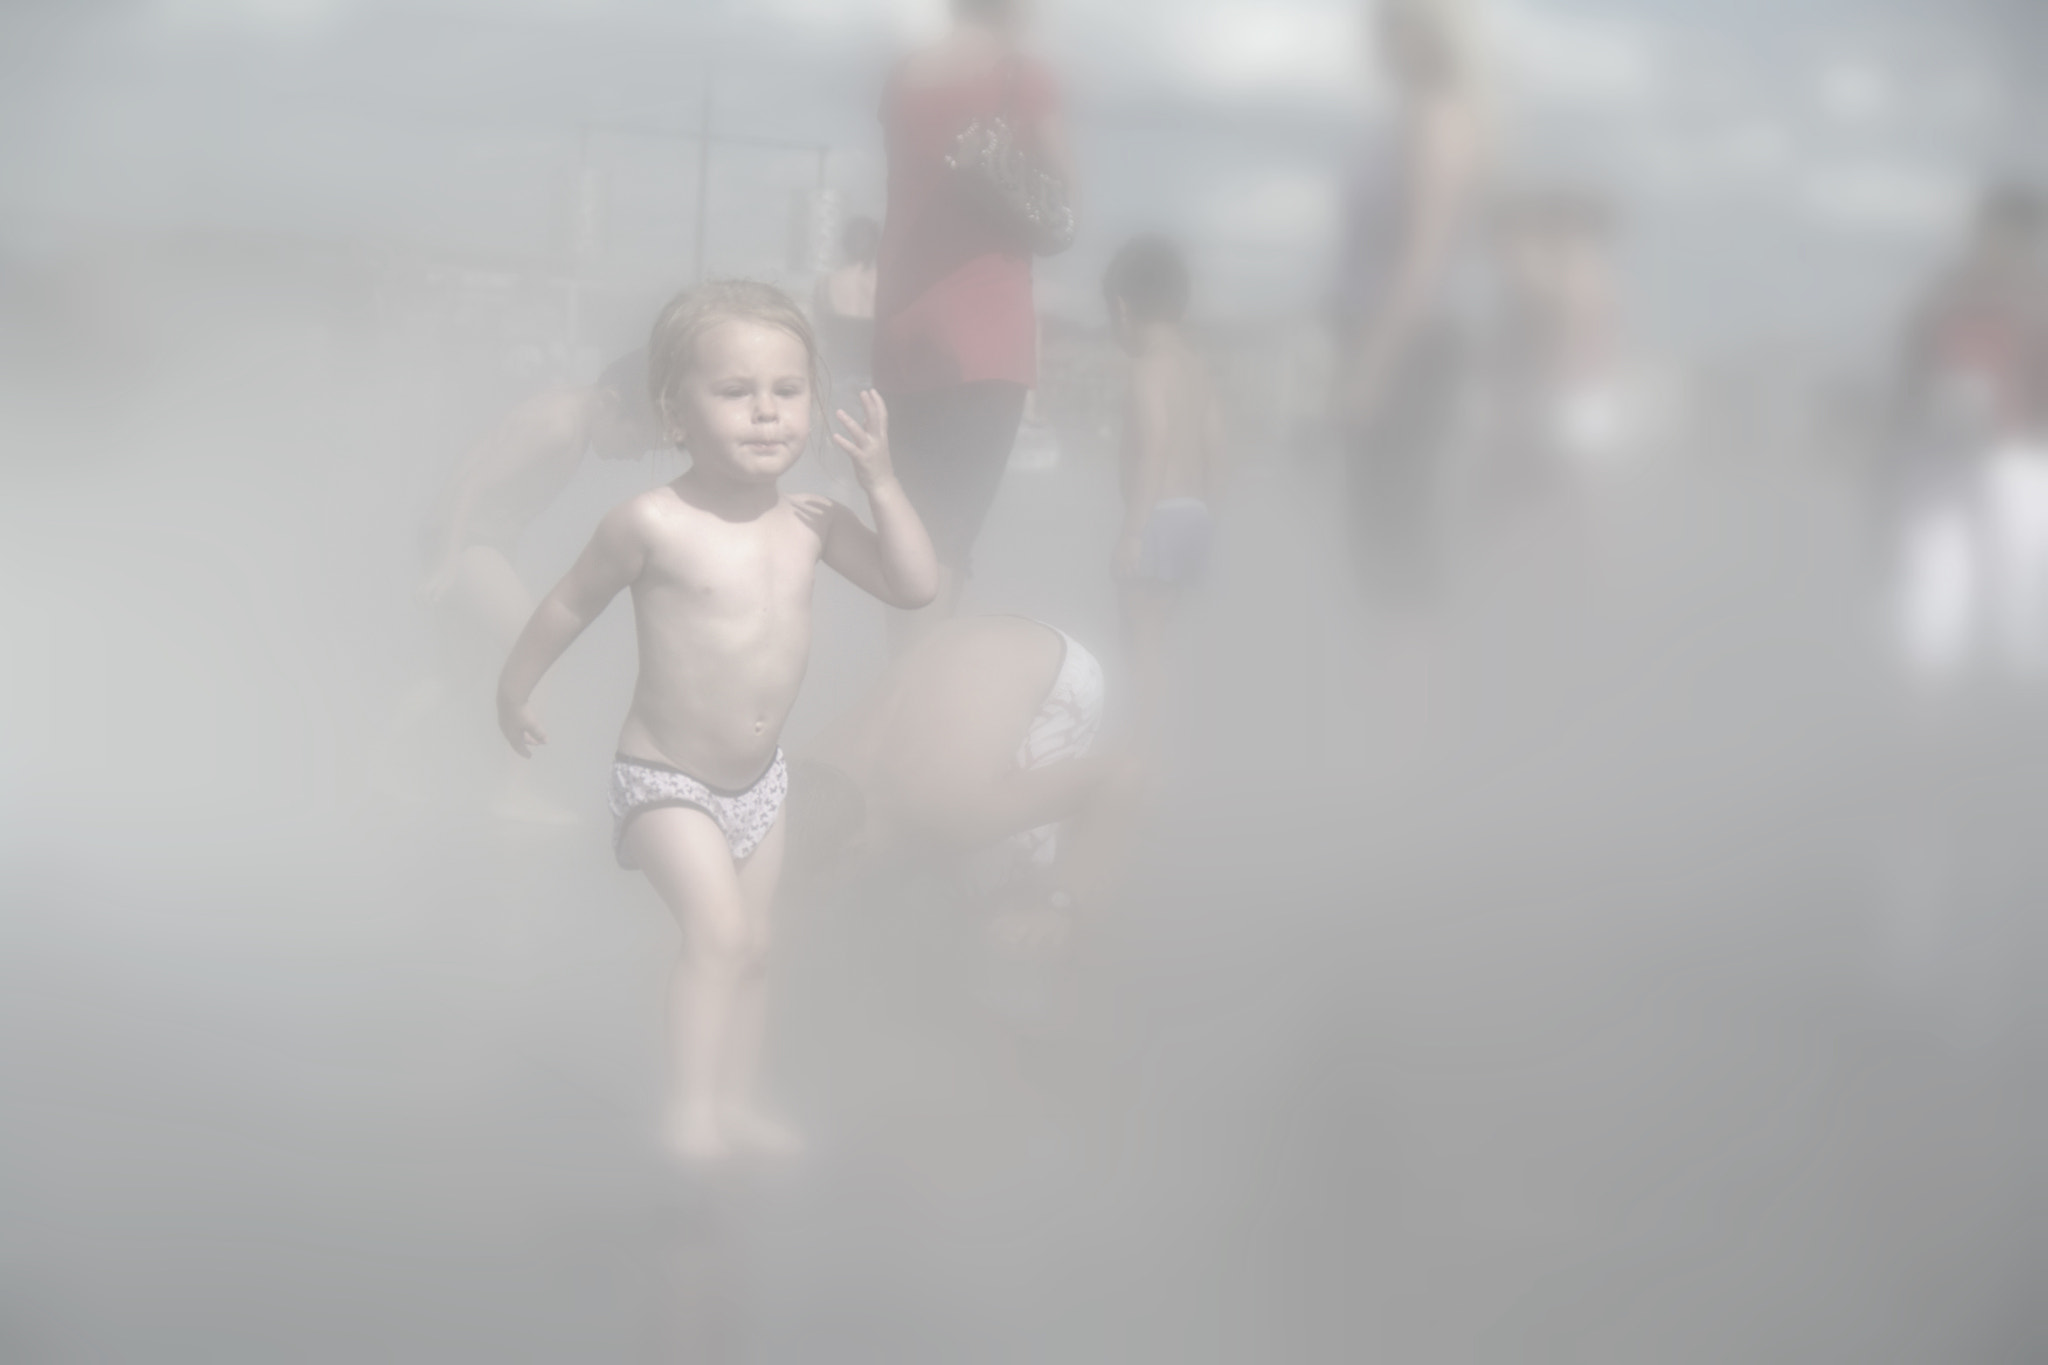 Photograph Little girl in fog by Steuker Photographie on 500px